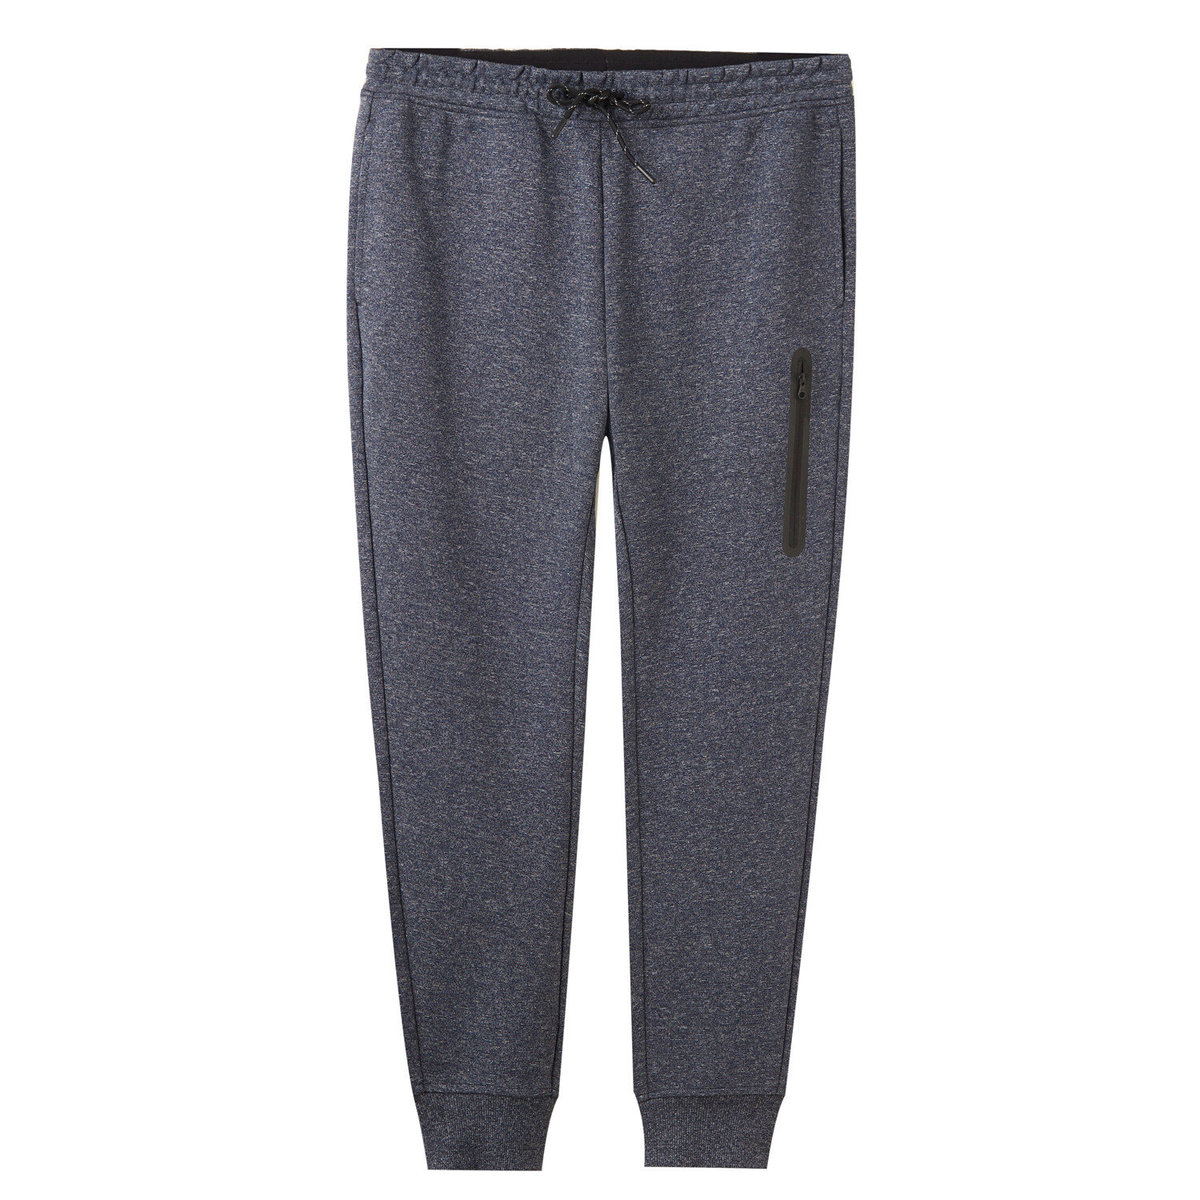 G-Motion Men's Double Knitted Drawstring Joggers